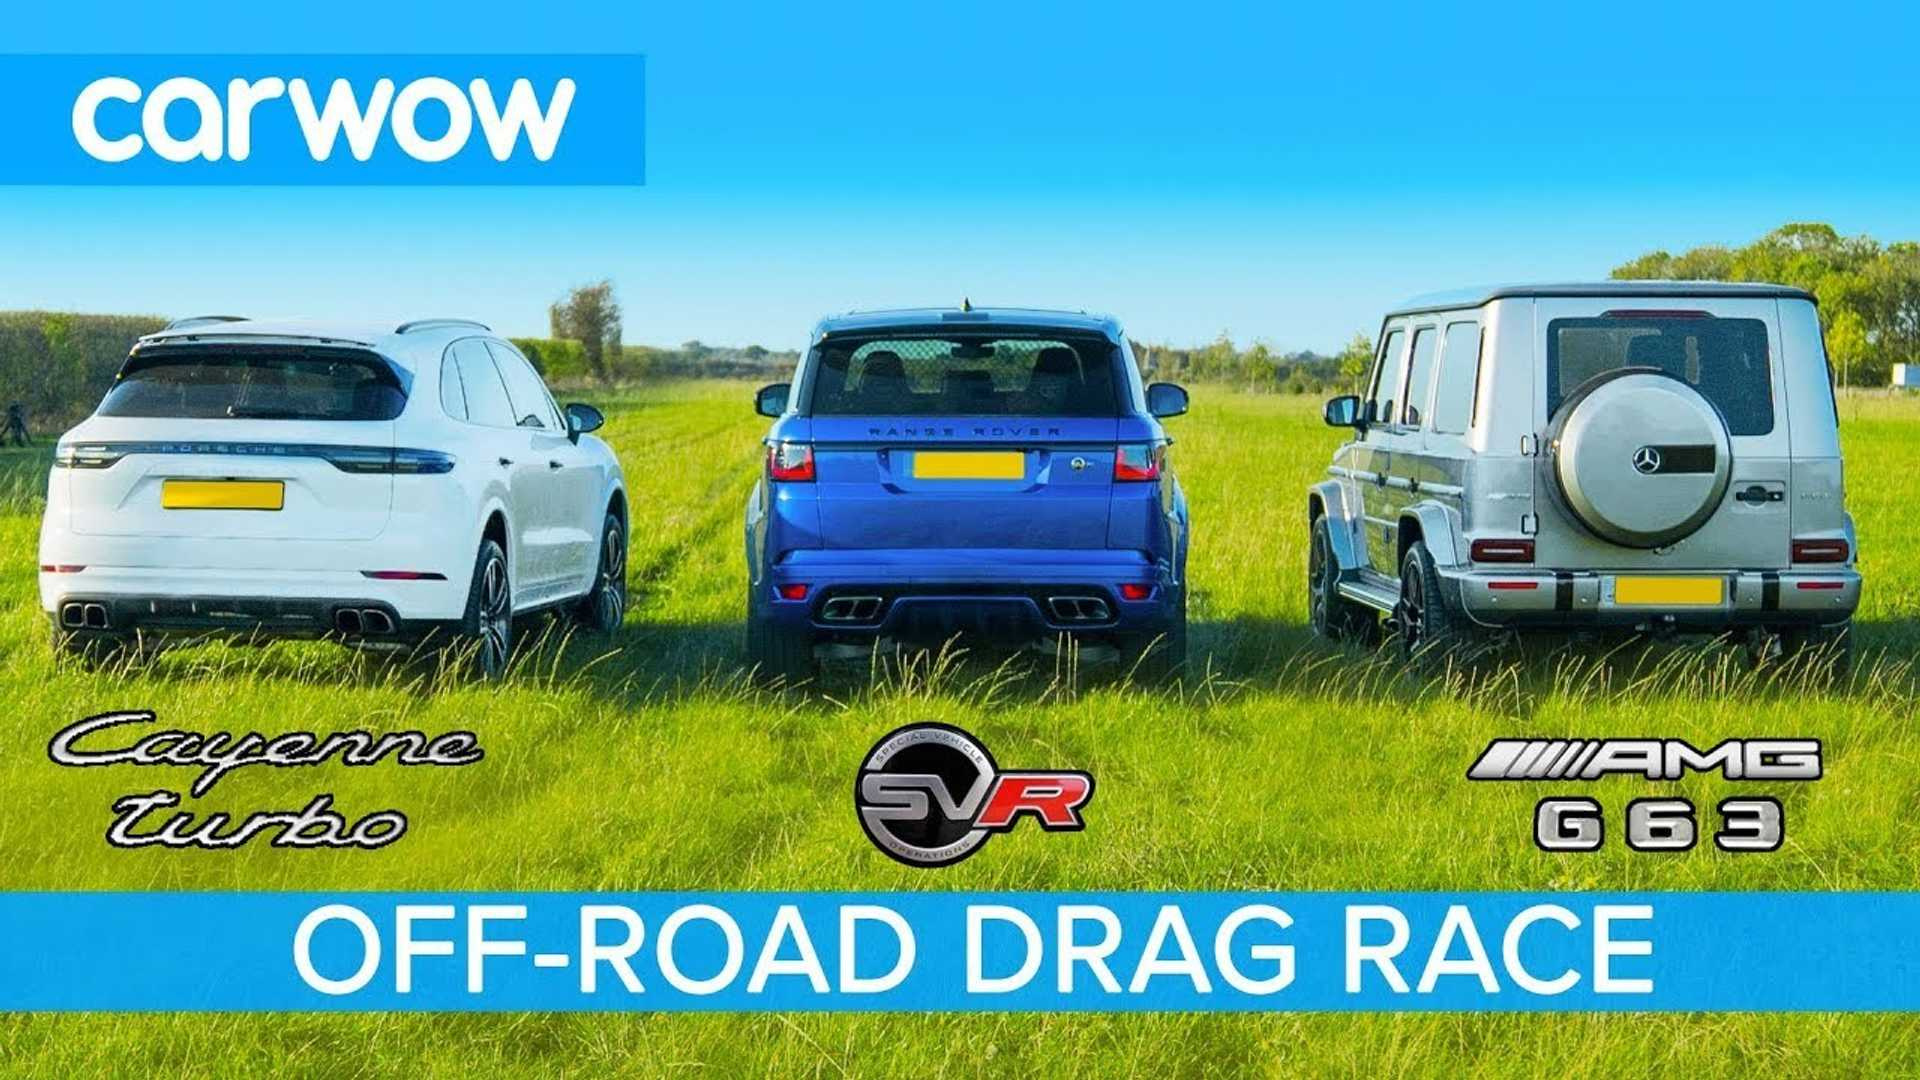 G63 Vs Cayenne Turbo Off Road Drag Race Is A Photo Finish